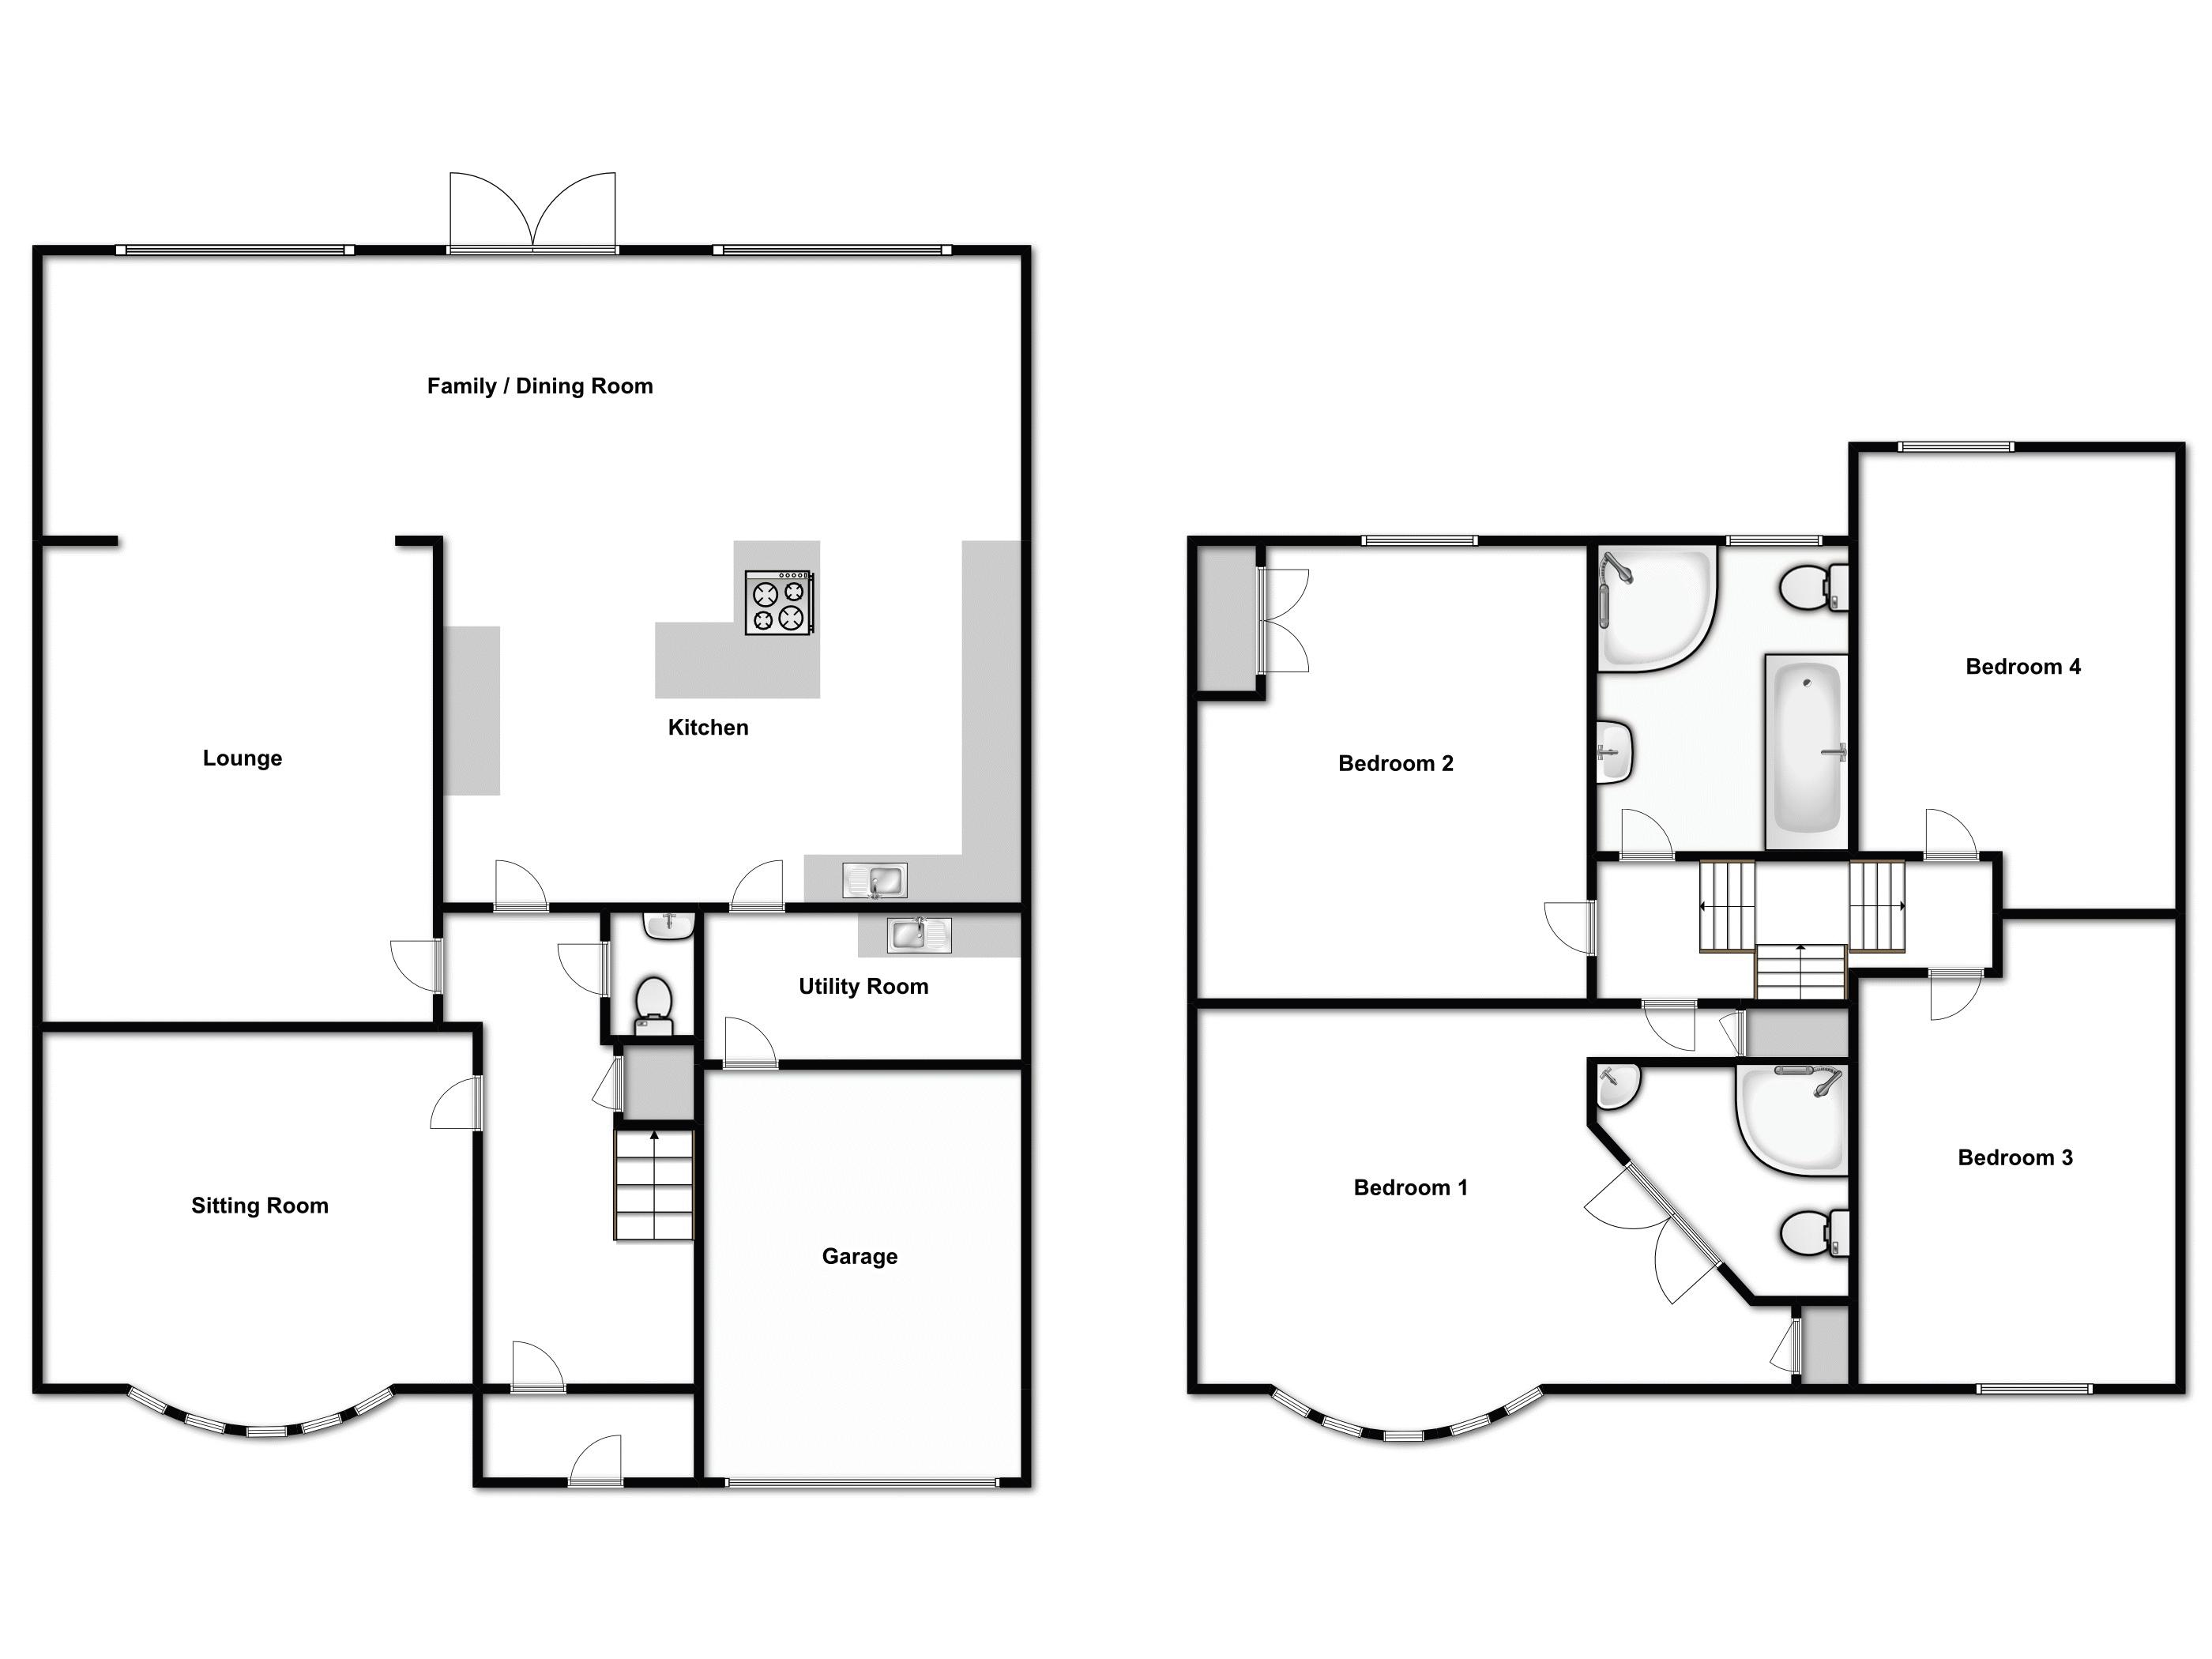 Fairholme Avenue, Gidea Park floor plan